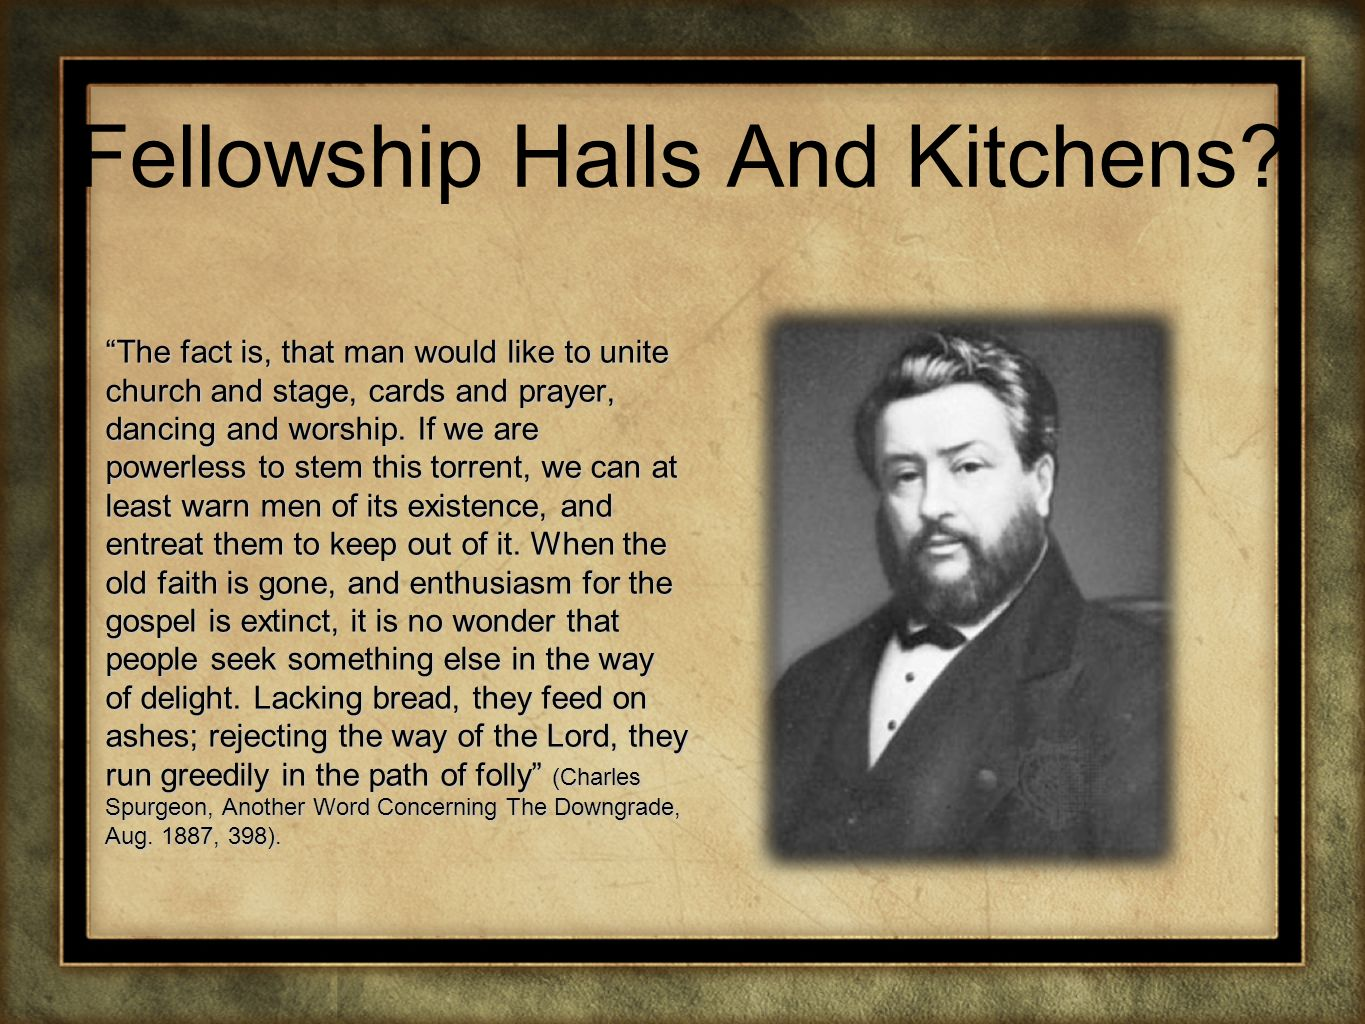 Fellowship Halls And Kitchens? The fact is, that man would like to unite church and stage, cards and prayer, dancing and worship. If we are powerless